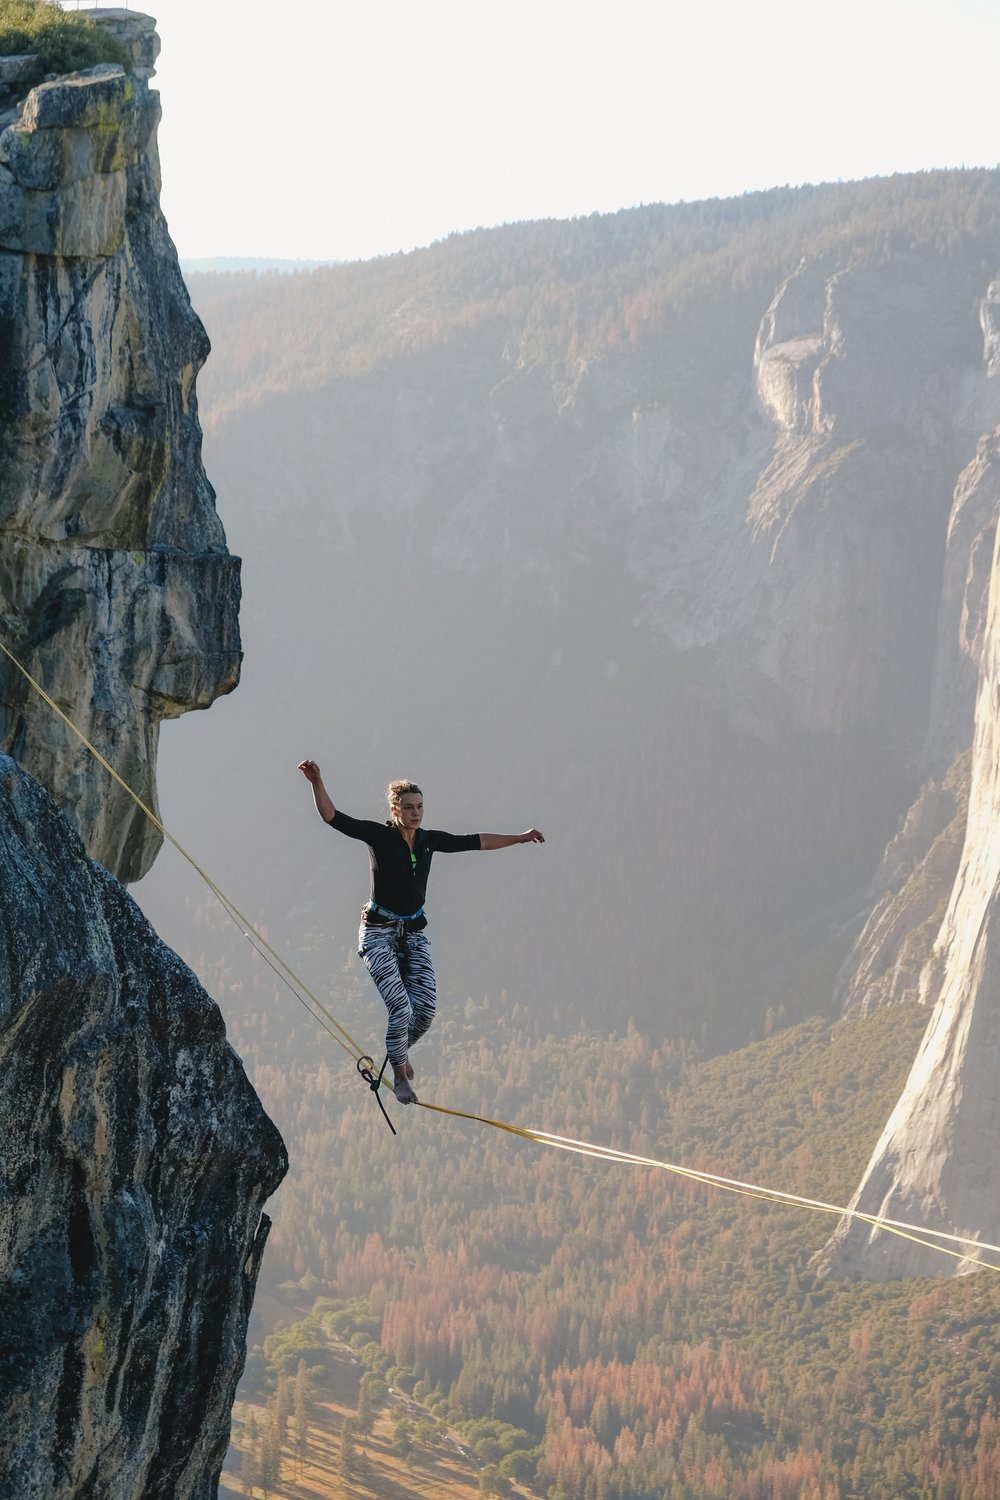 Facing fears. - The benefits of 'fear setting'.